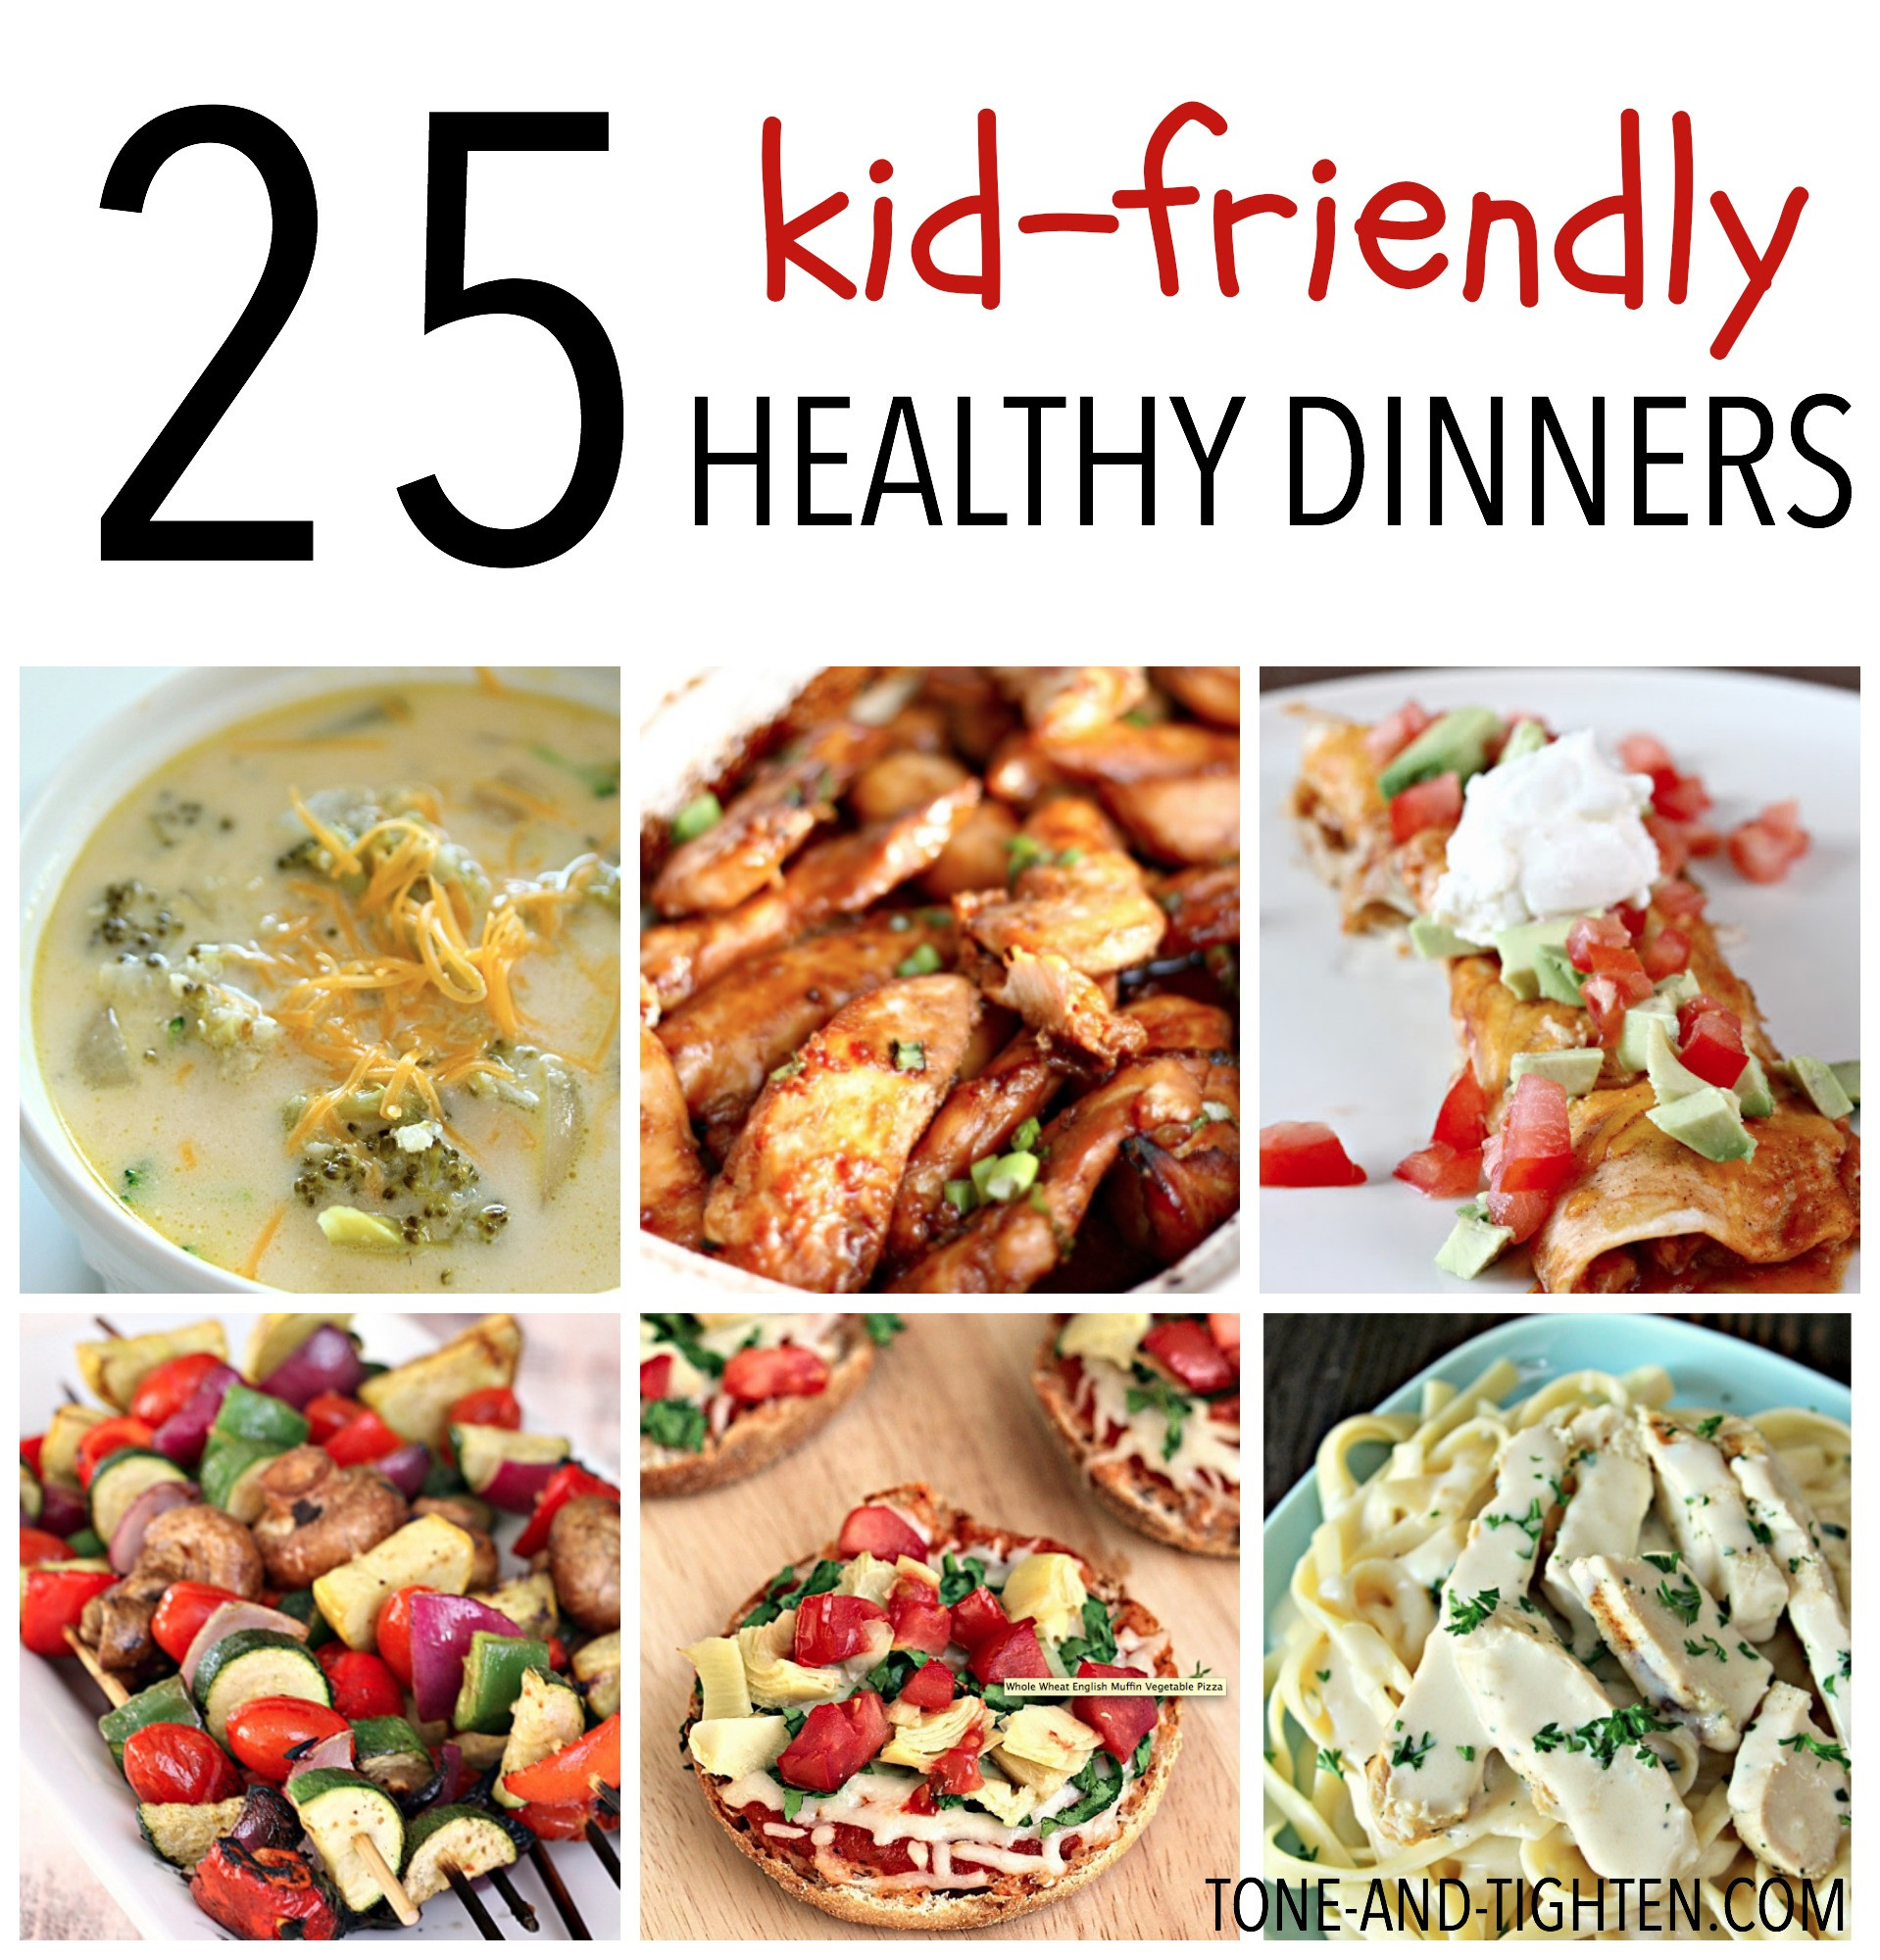 Healthy Dinner Recipes For Kids  25 Kid Friendly Healthy Dinners